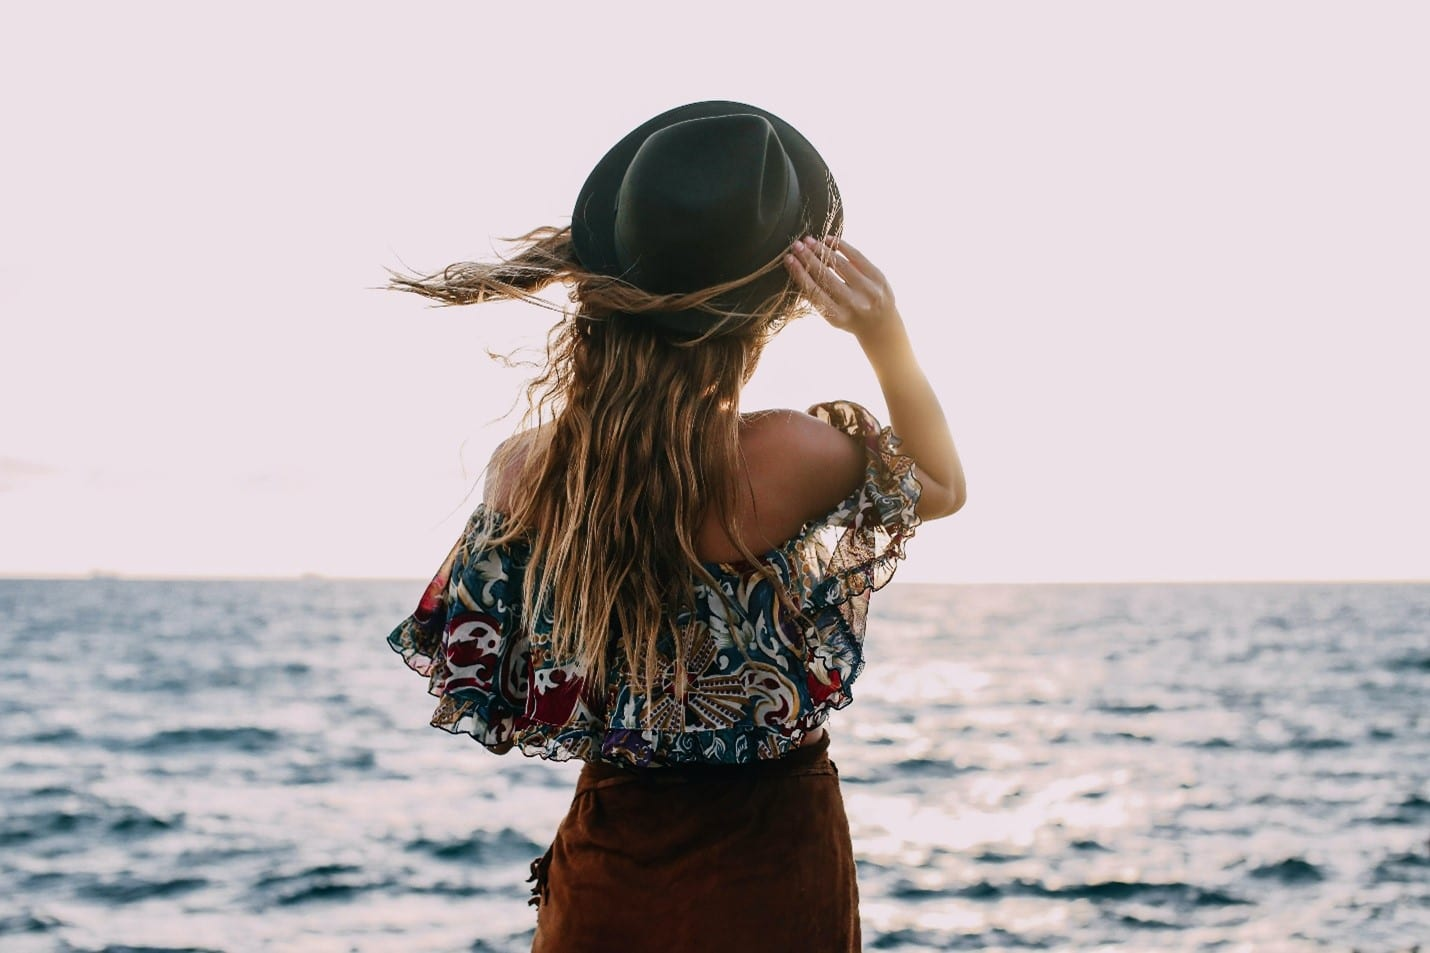 Top 5 place for women travelling alone